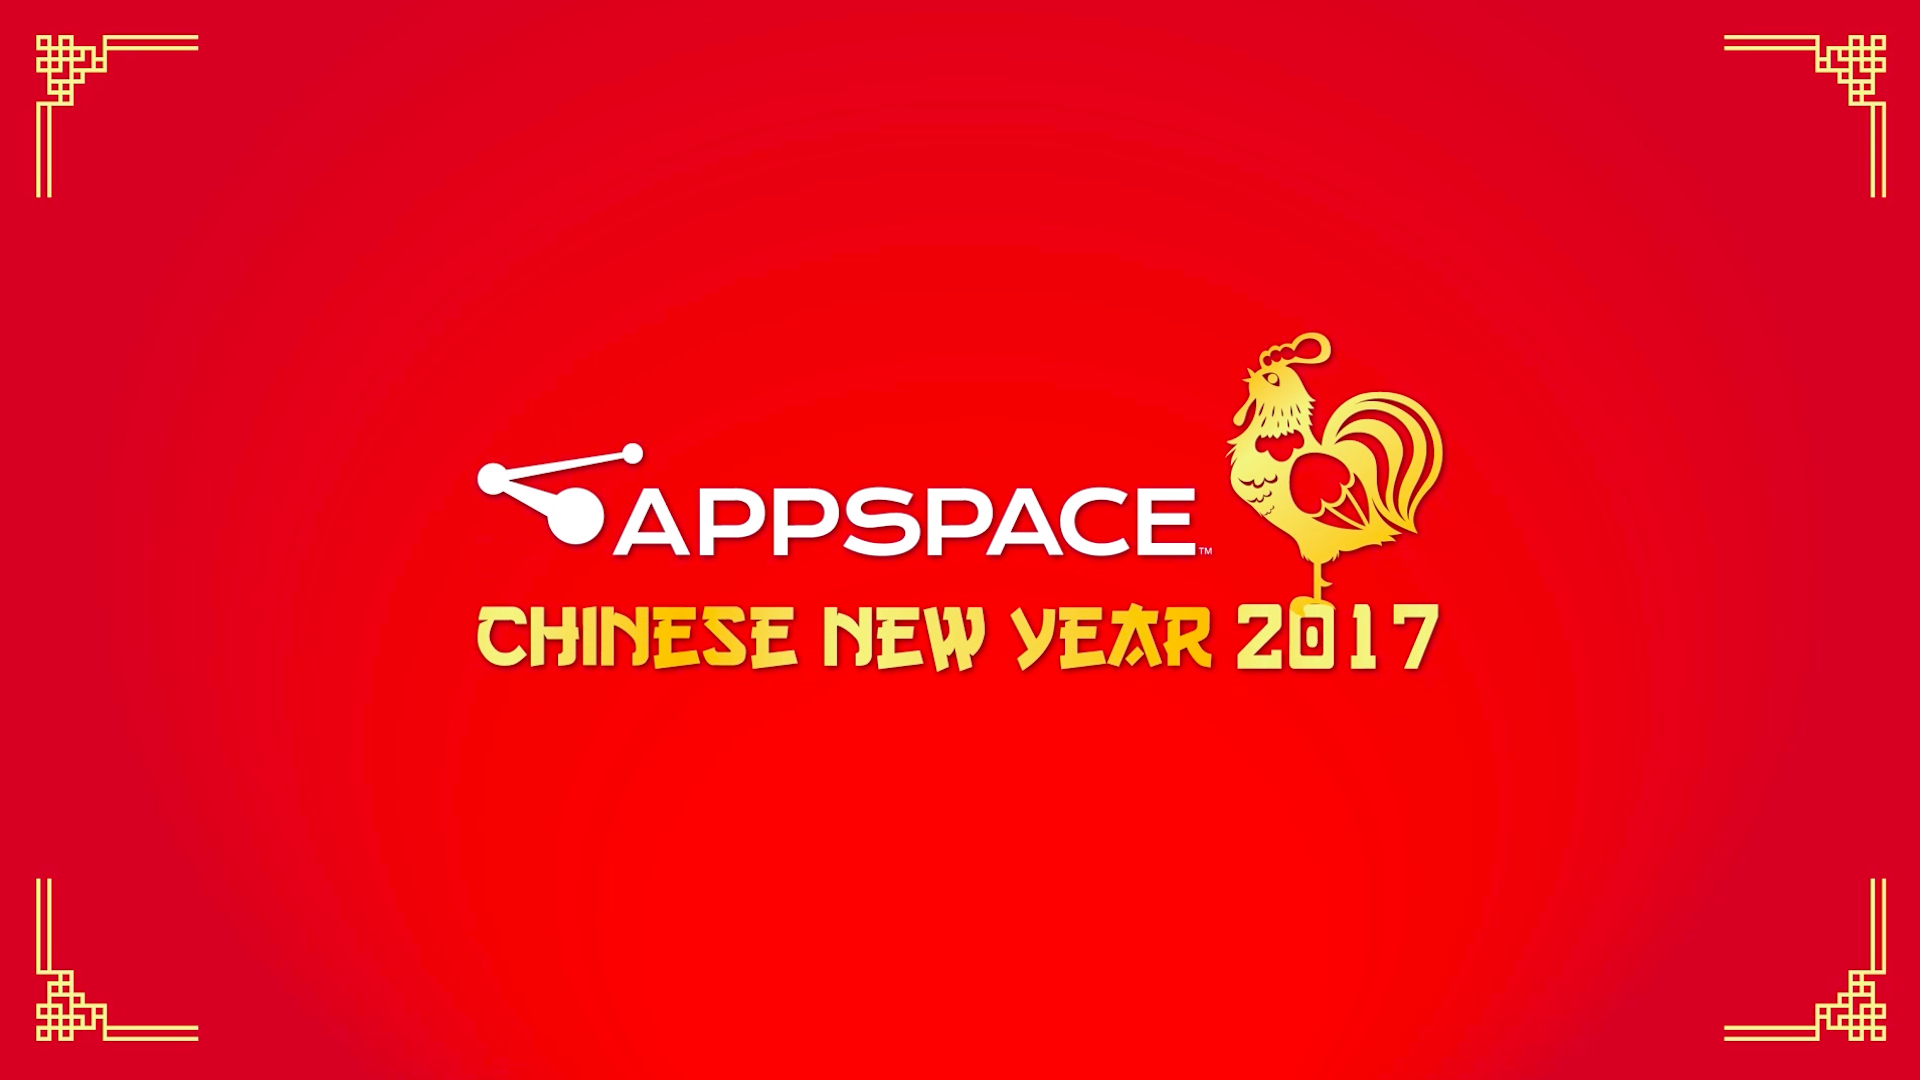 video appspace chinese new year